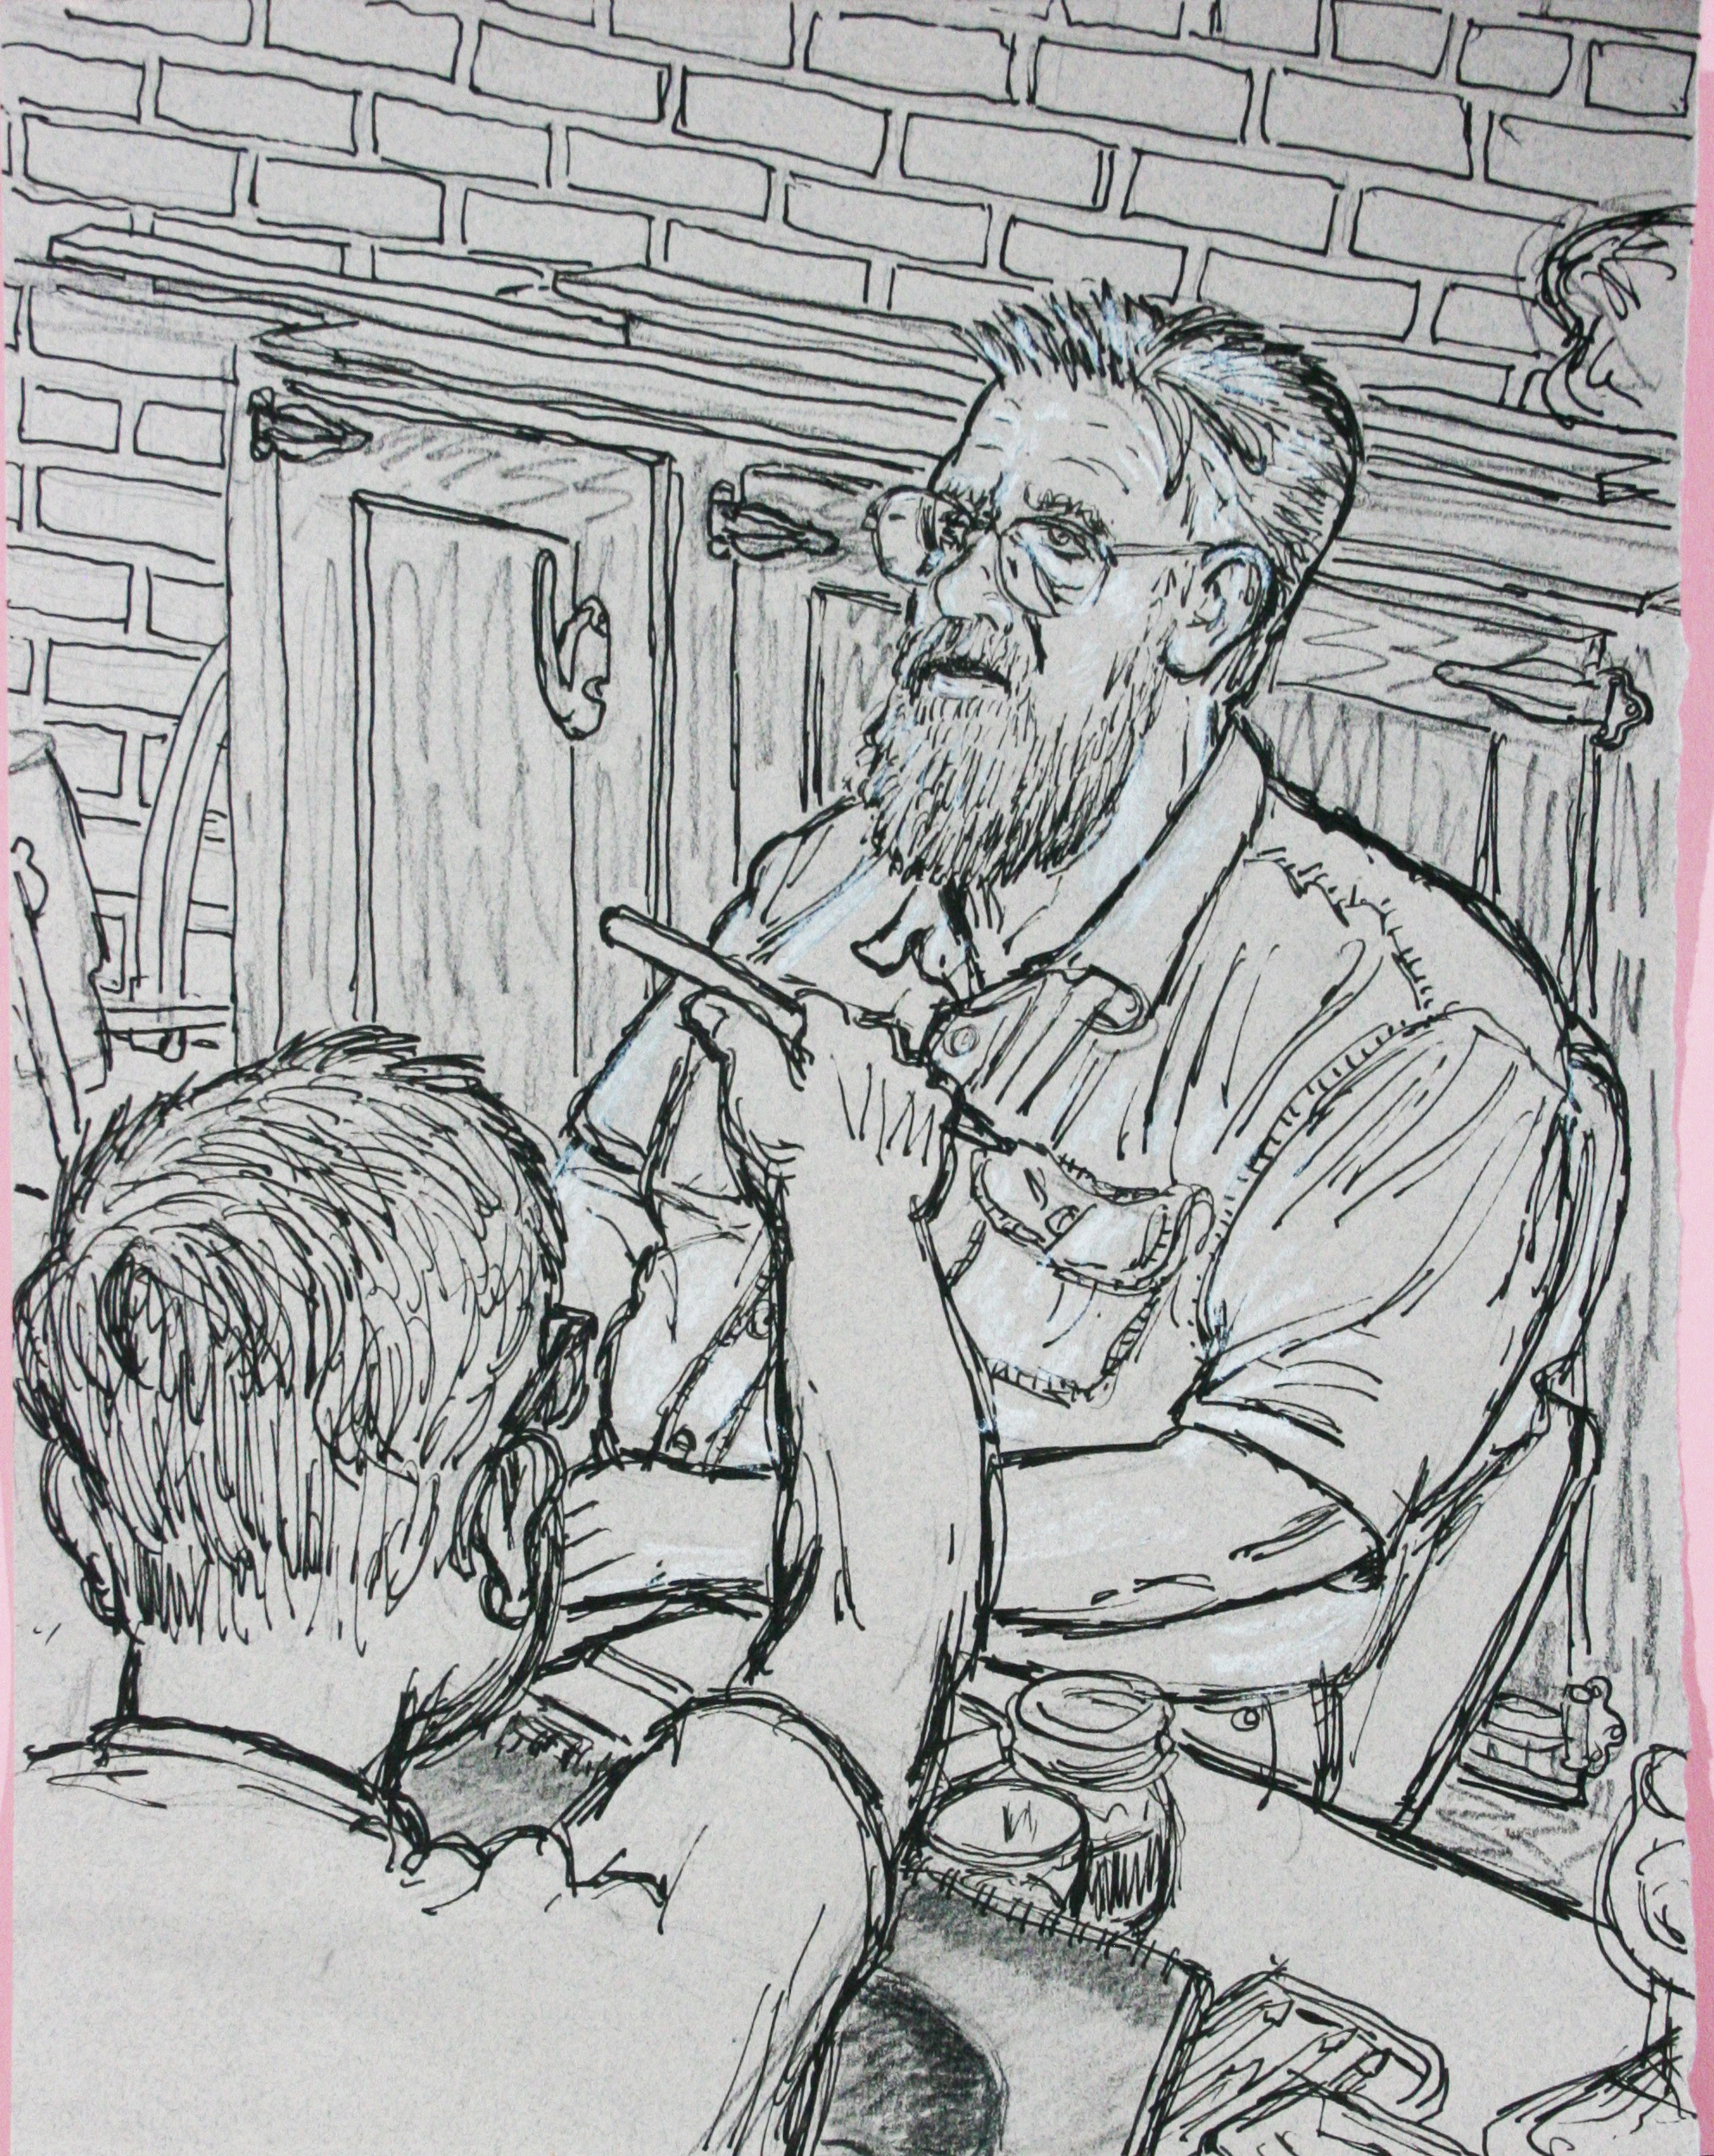 Jack Flotte did this 3-hour ink drawing (including Howard Collier).